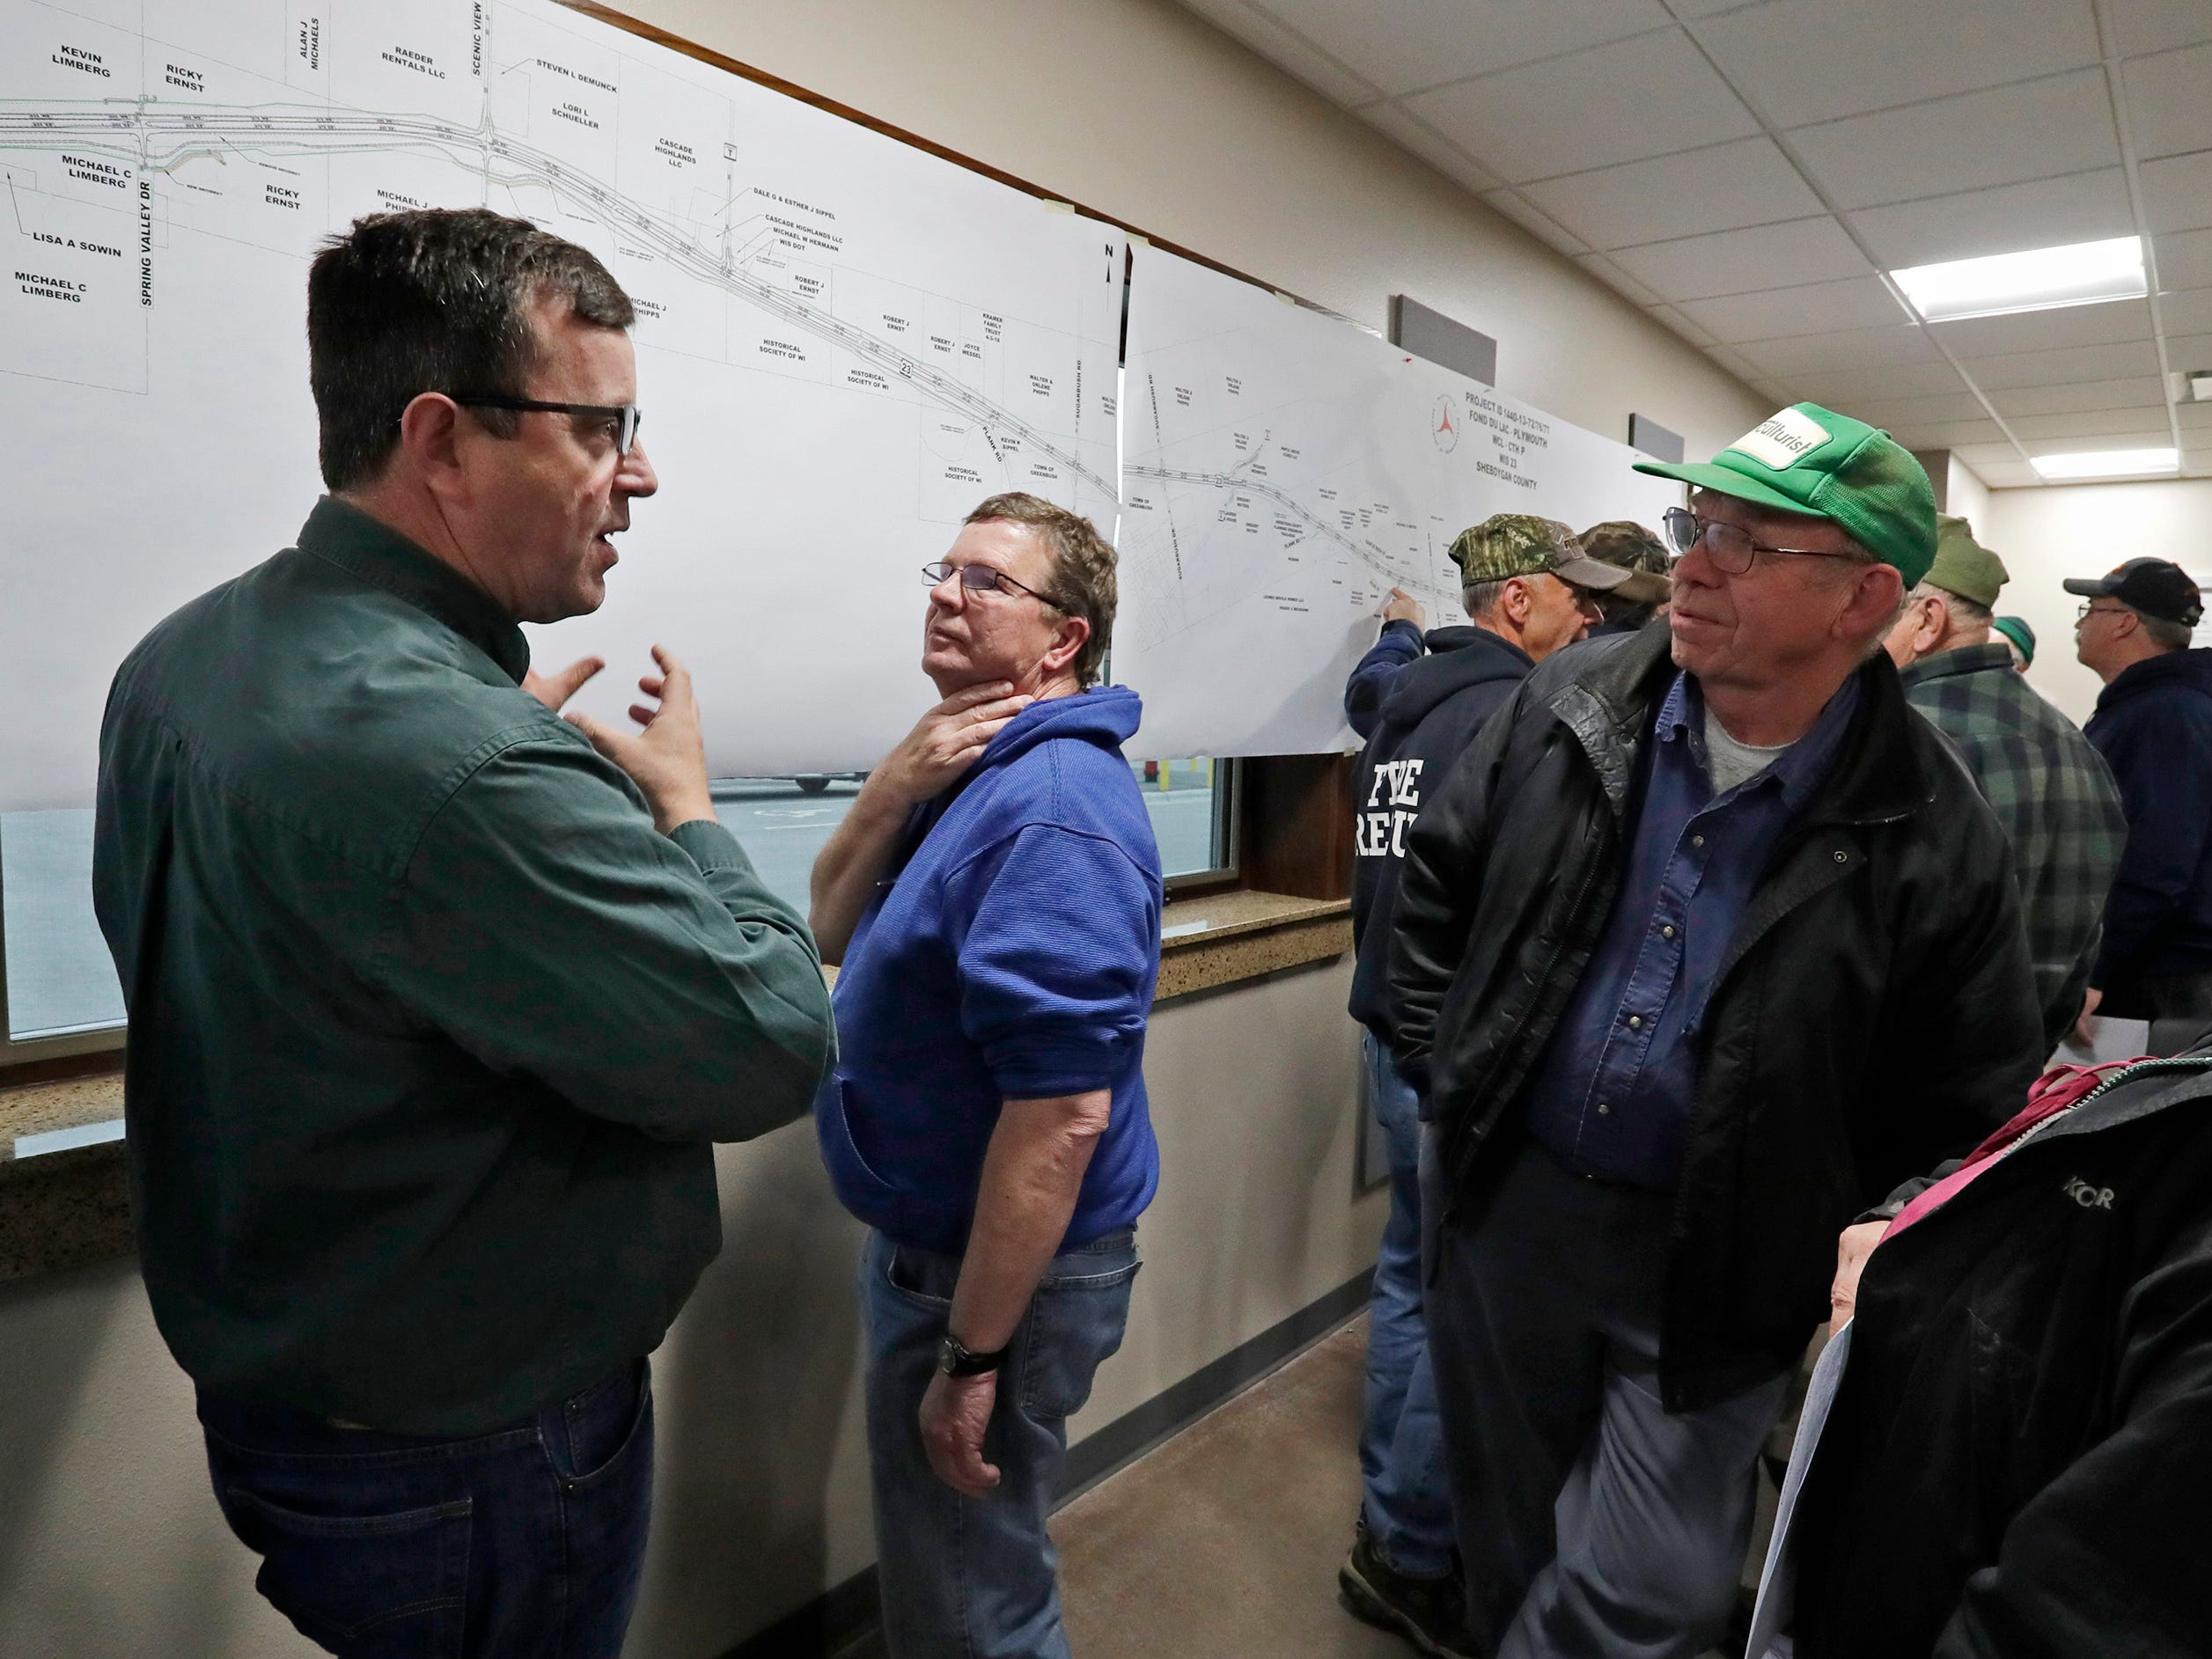 Relyco's Tom Ceske, left, talks to people impacted by the state Highway 23 four-lane construction project at meeting at the Sheboygan County Transportation facility, Thursday, May 9, 2019, in Plymouth, Wis. Relyco is the project manager for the project.